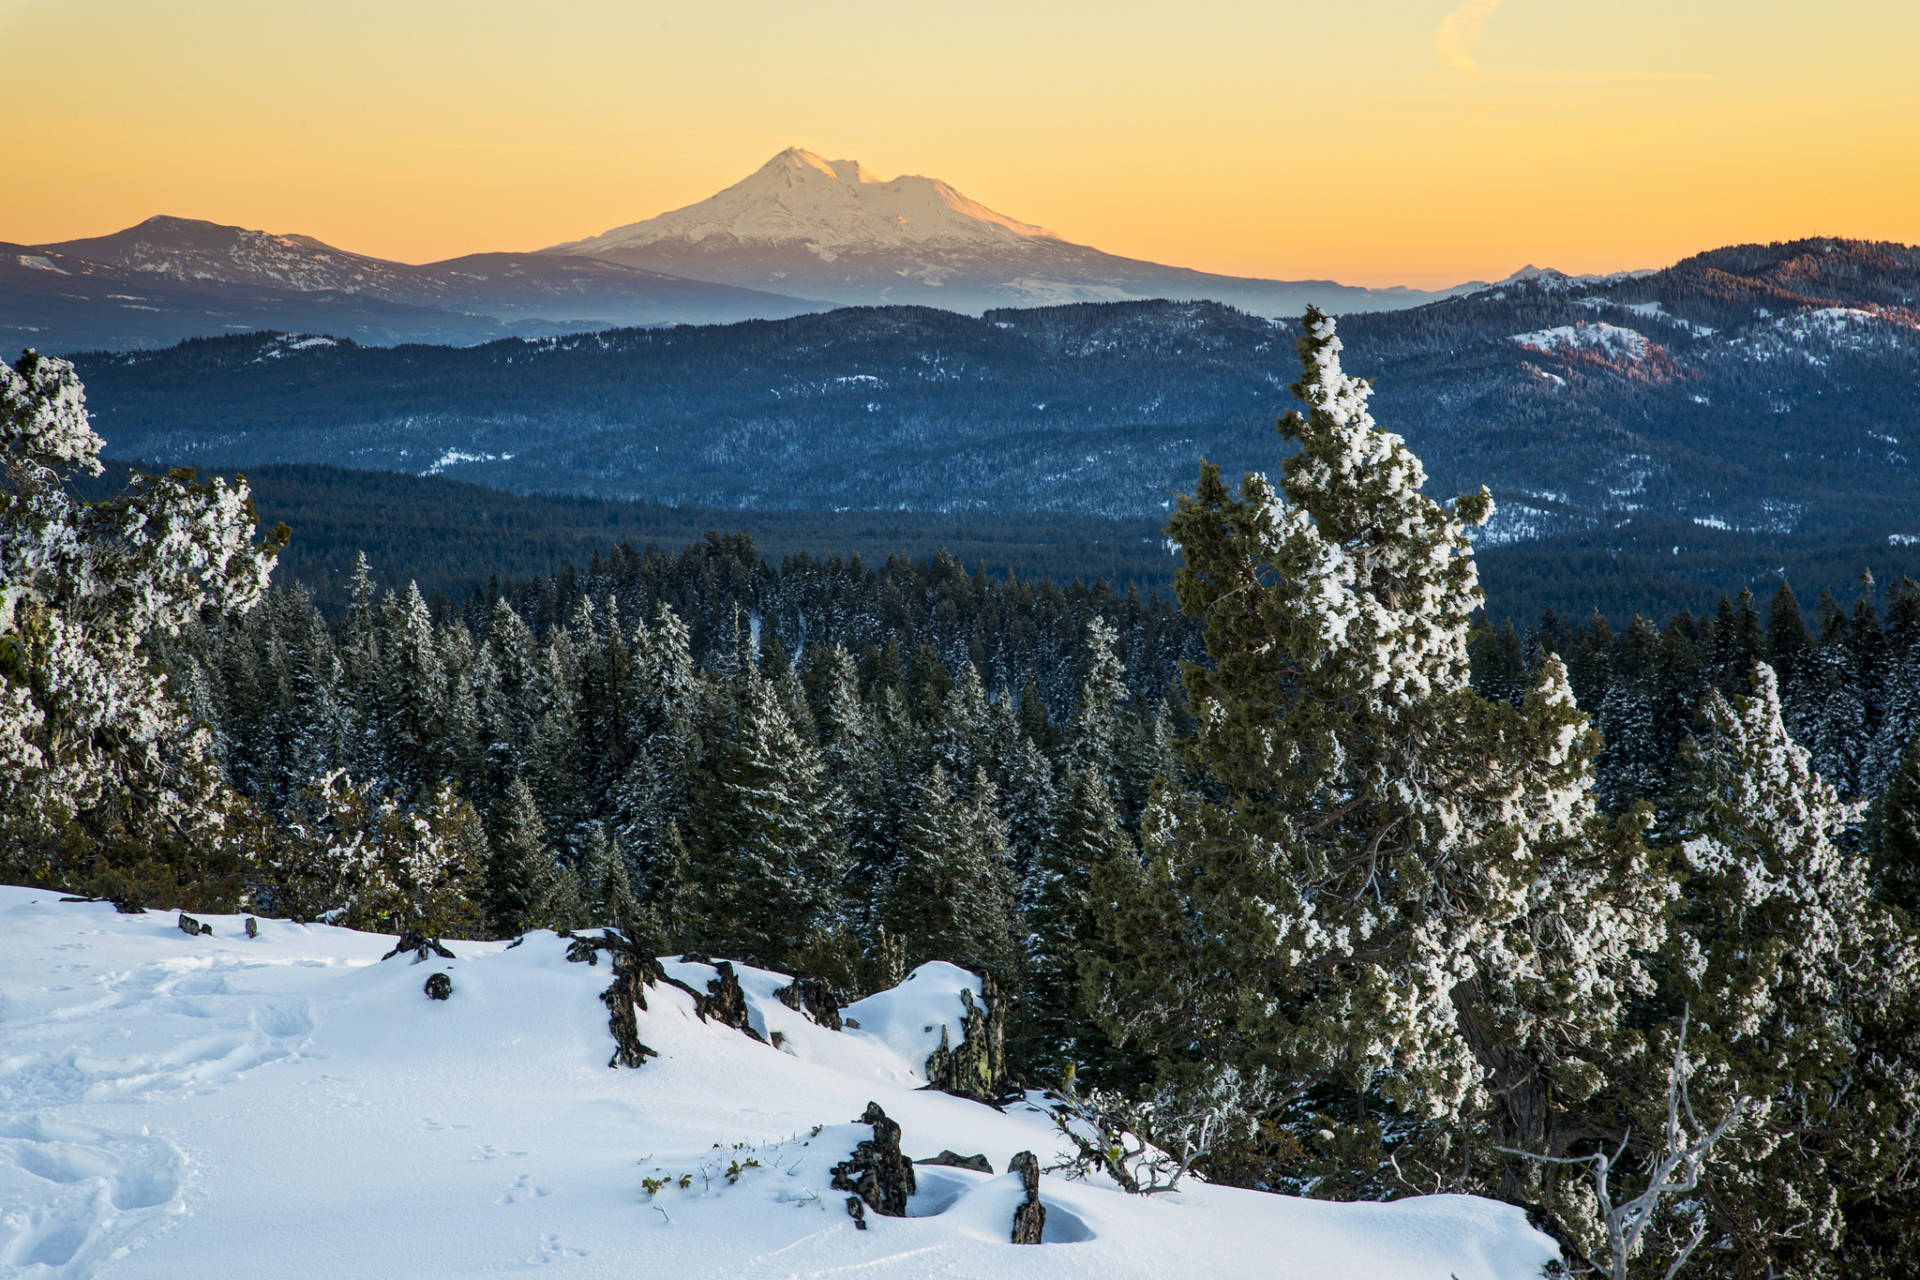 The Cascade-Siskiyou National Monument is located in southwest Oregon and was expanded via proclamation from President Obama on Jan. 12, 2017, making it approximately 112,000 acres. Interior Secretary Ryan Zinke now recommends shrinking the monument.   Bob Wick/BLM